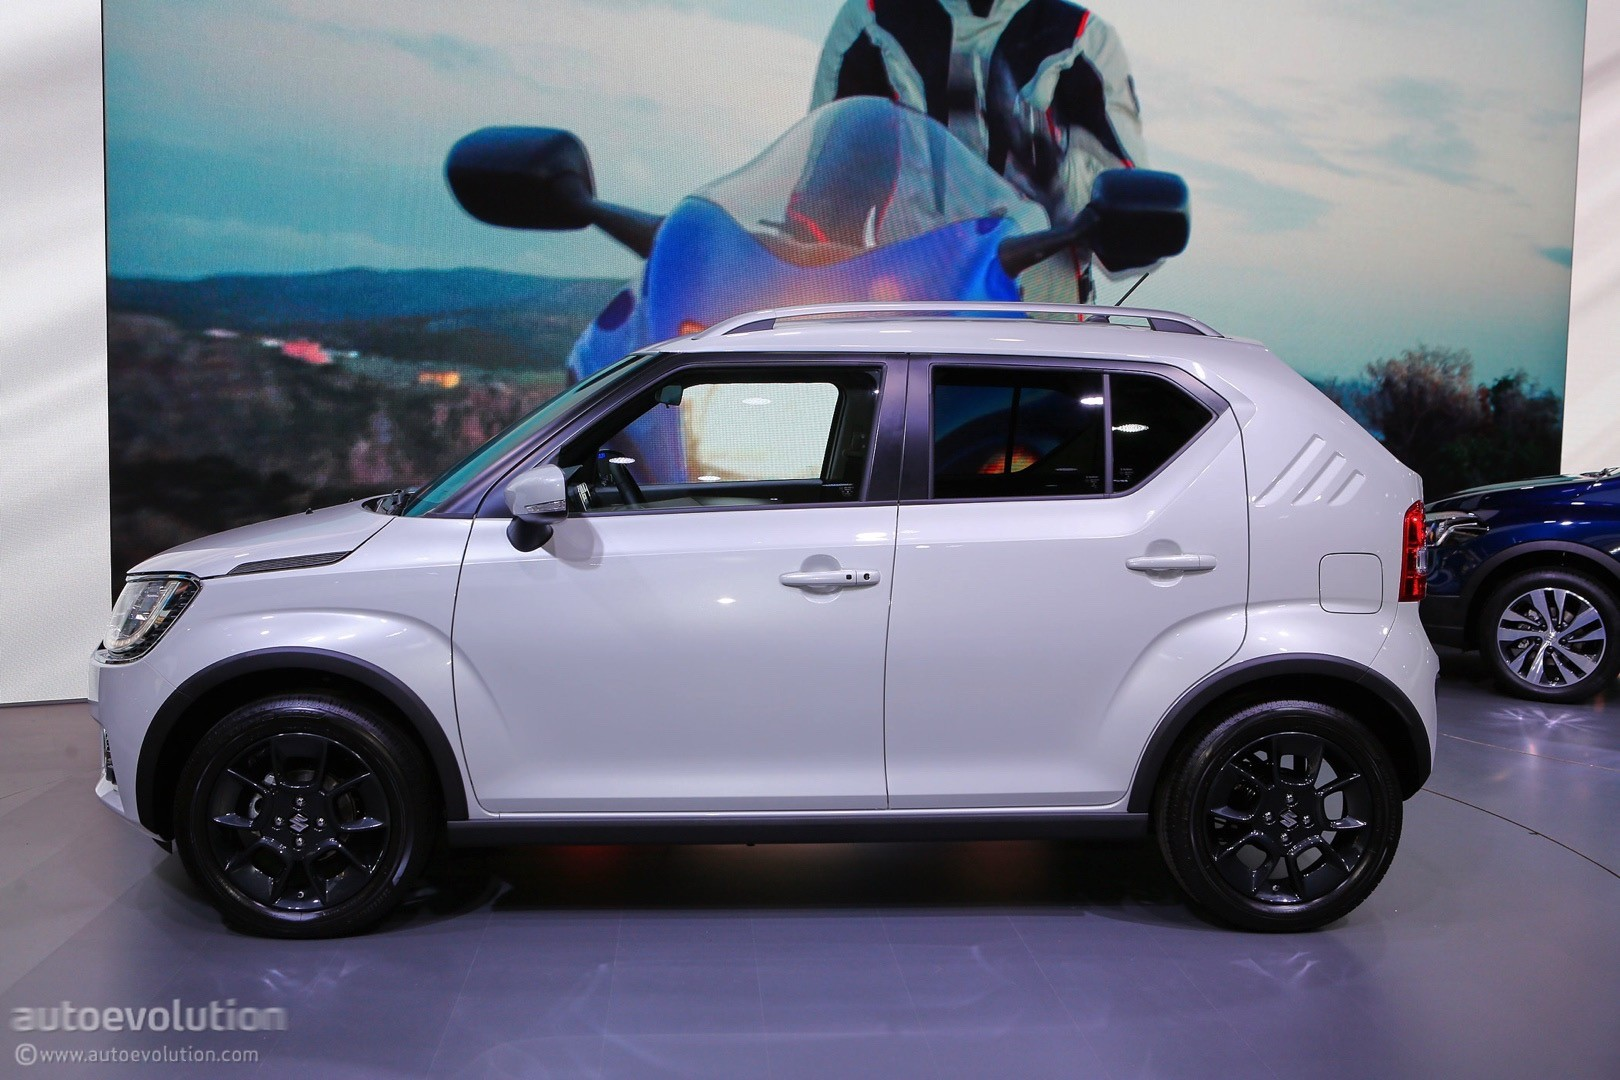 Creative 2017 Suzuki Ignis Price Set For Europe 9999 In The UK